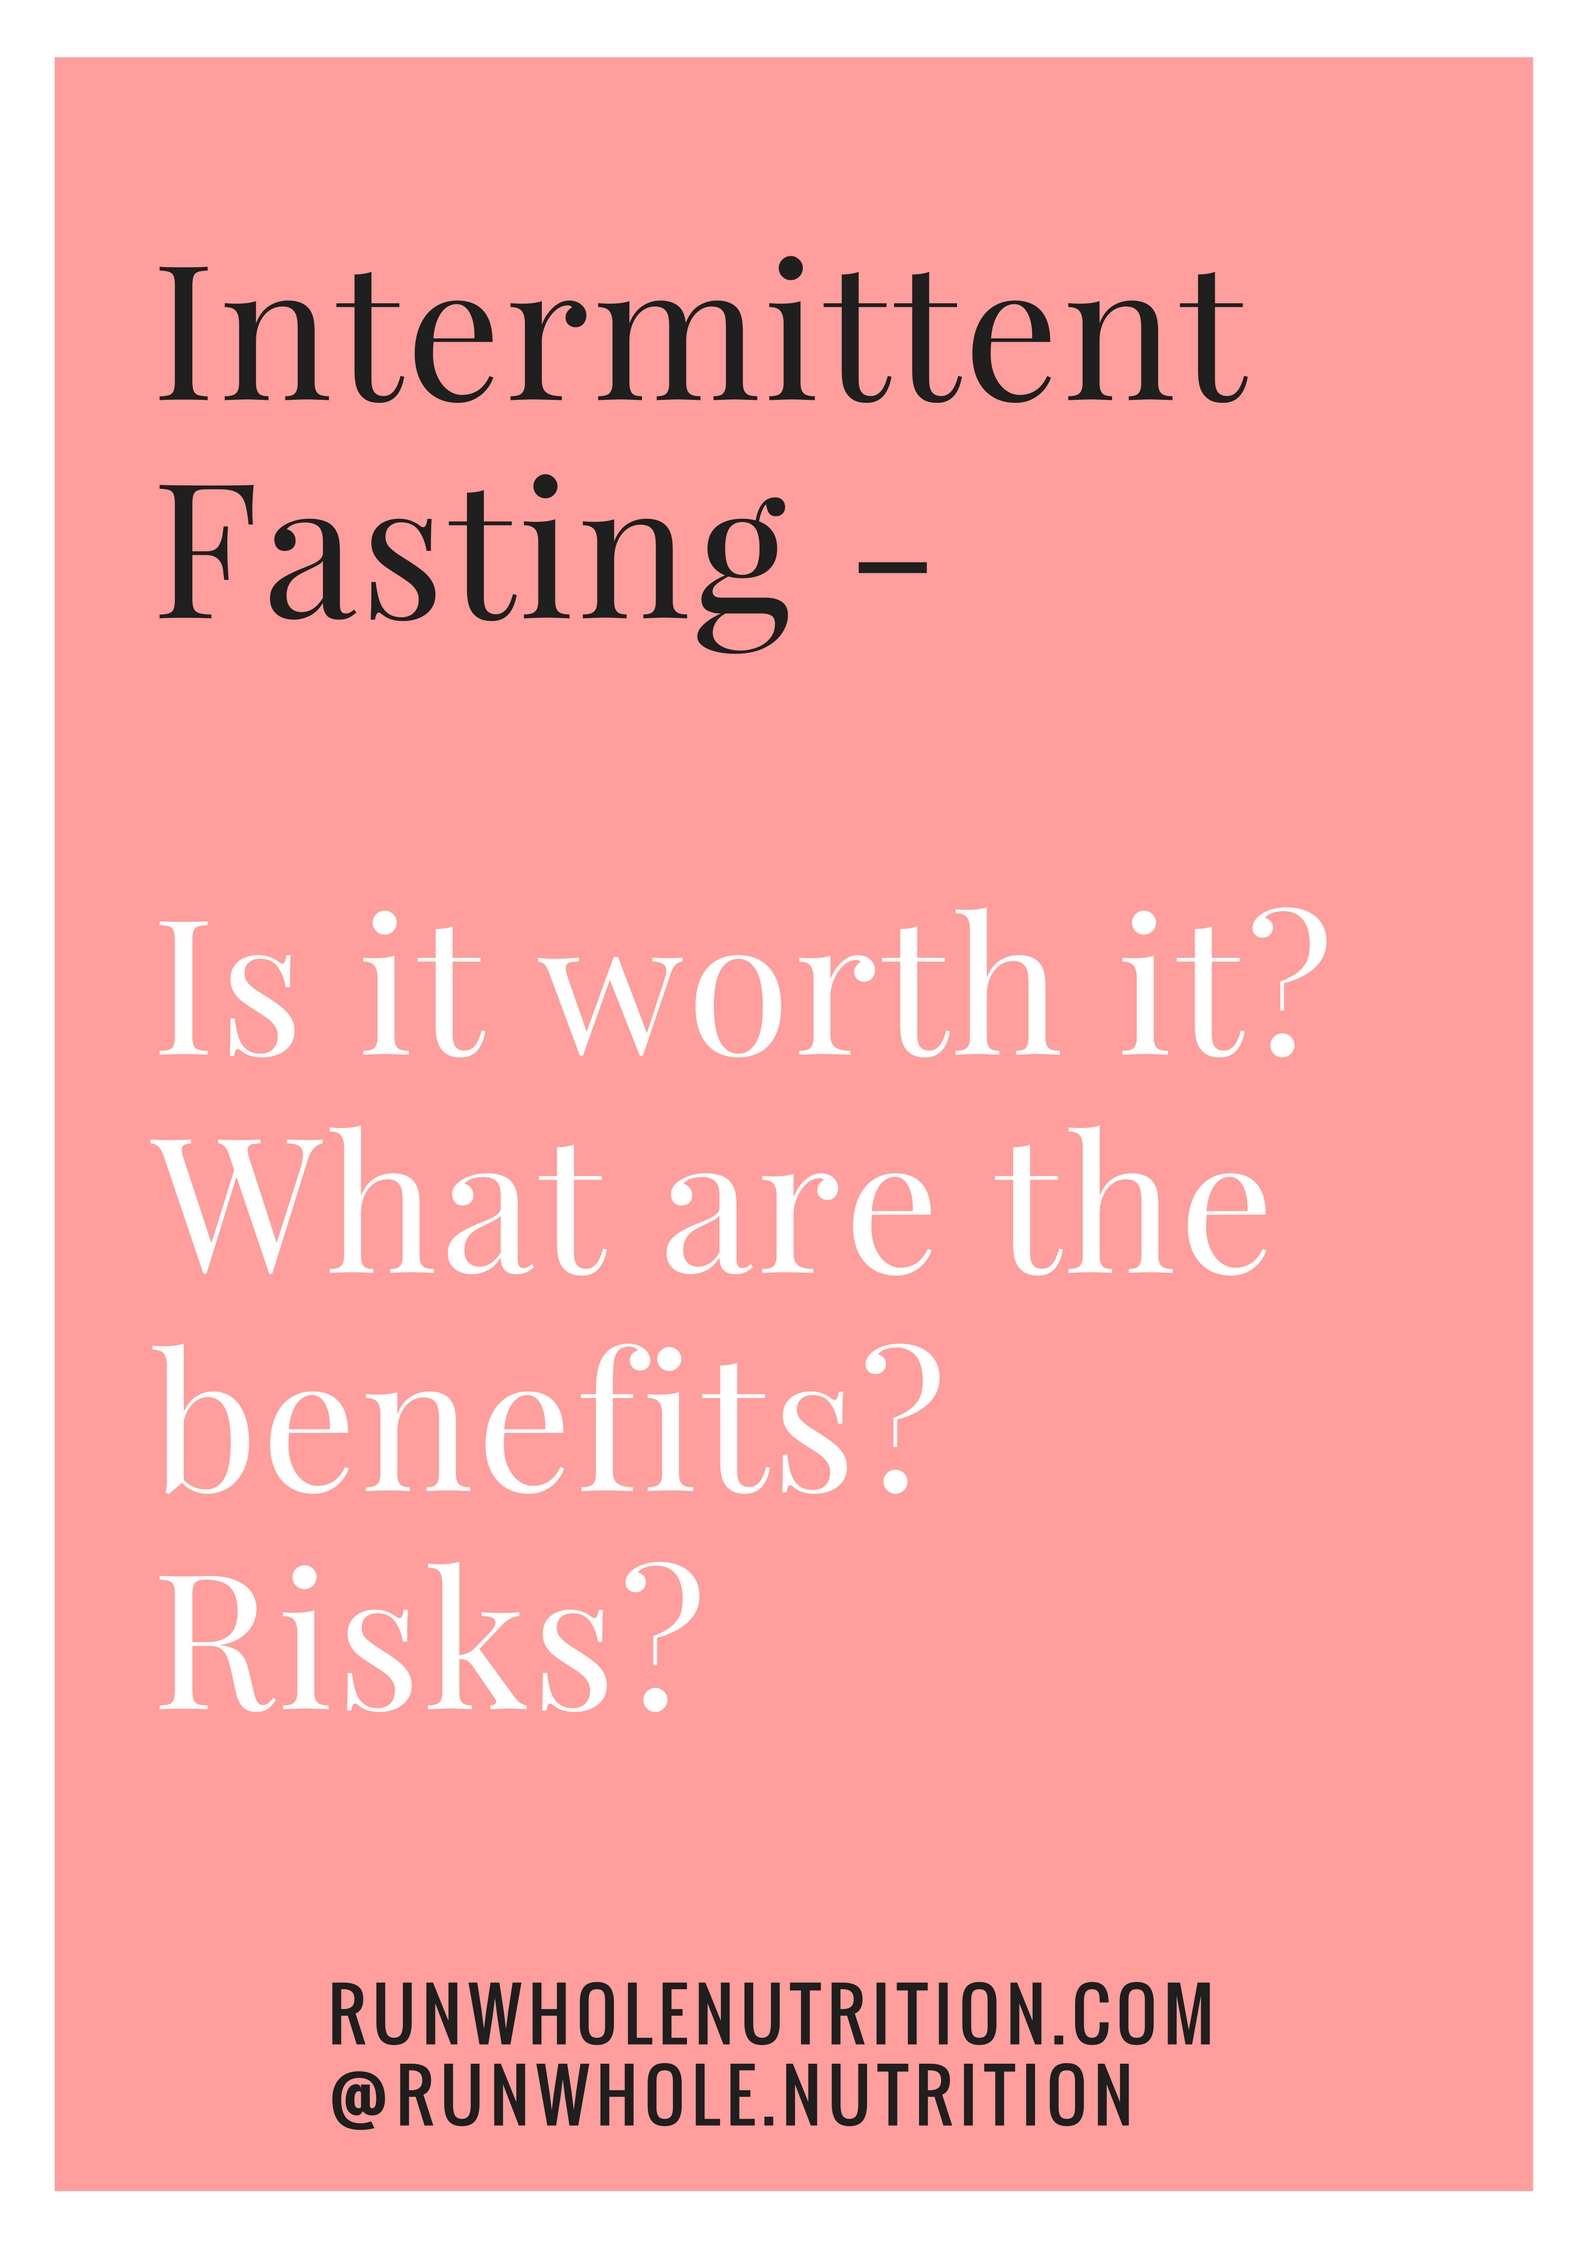 Intermittent Fasting - is it worth it? | Runwholenutrition.com